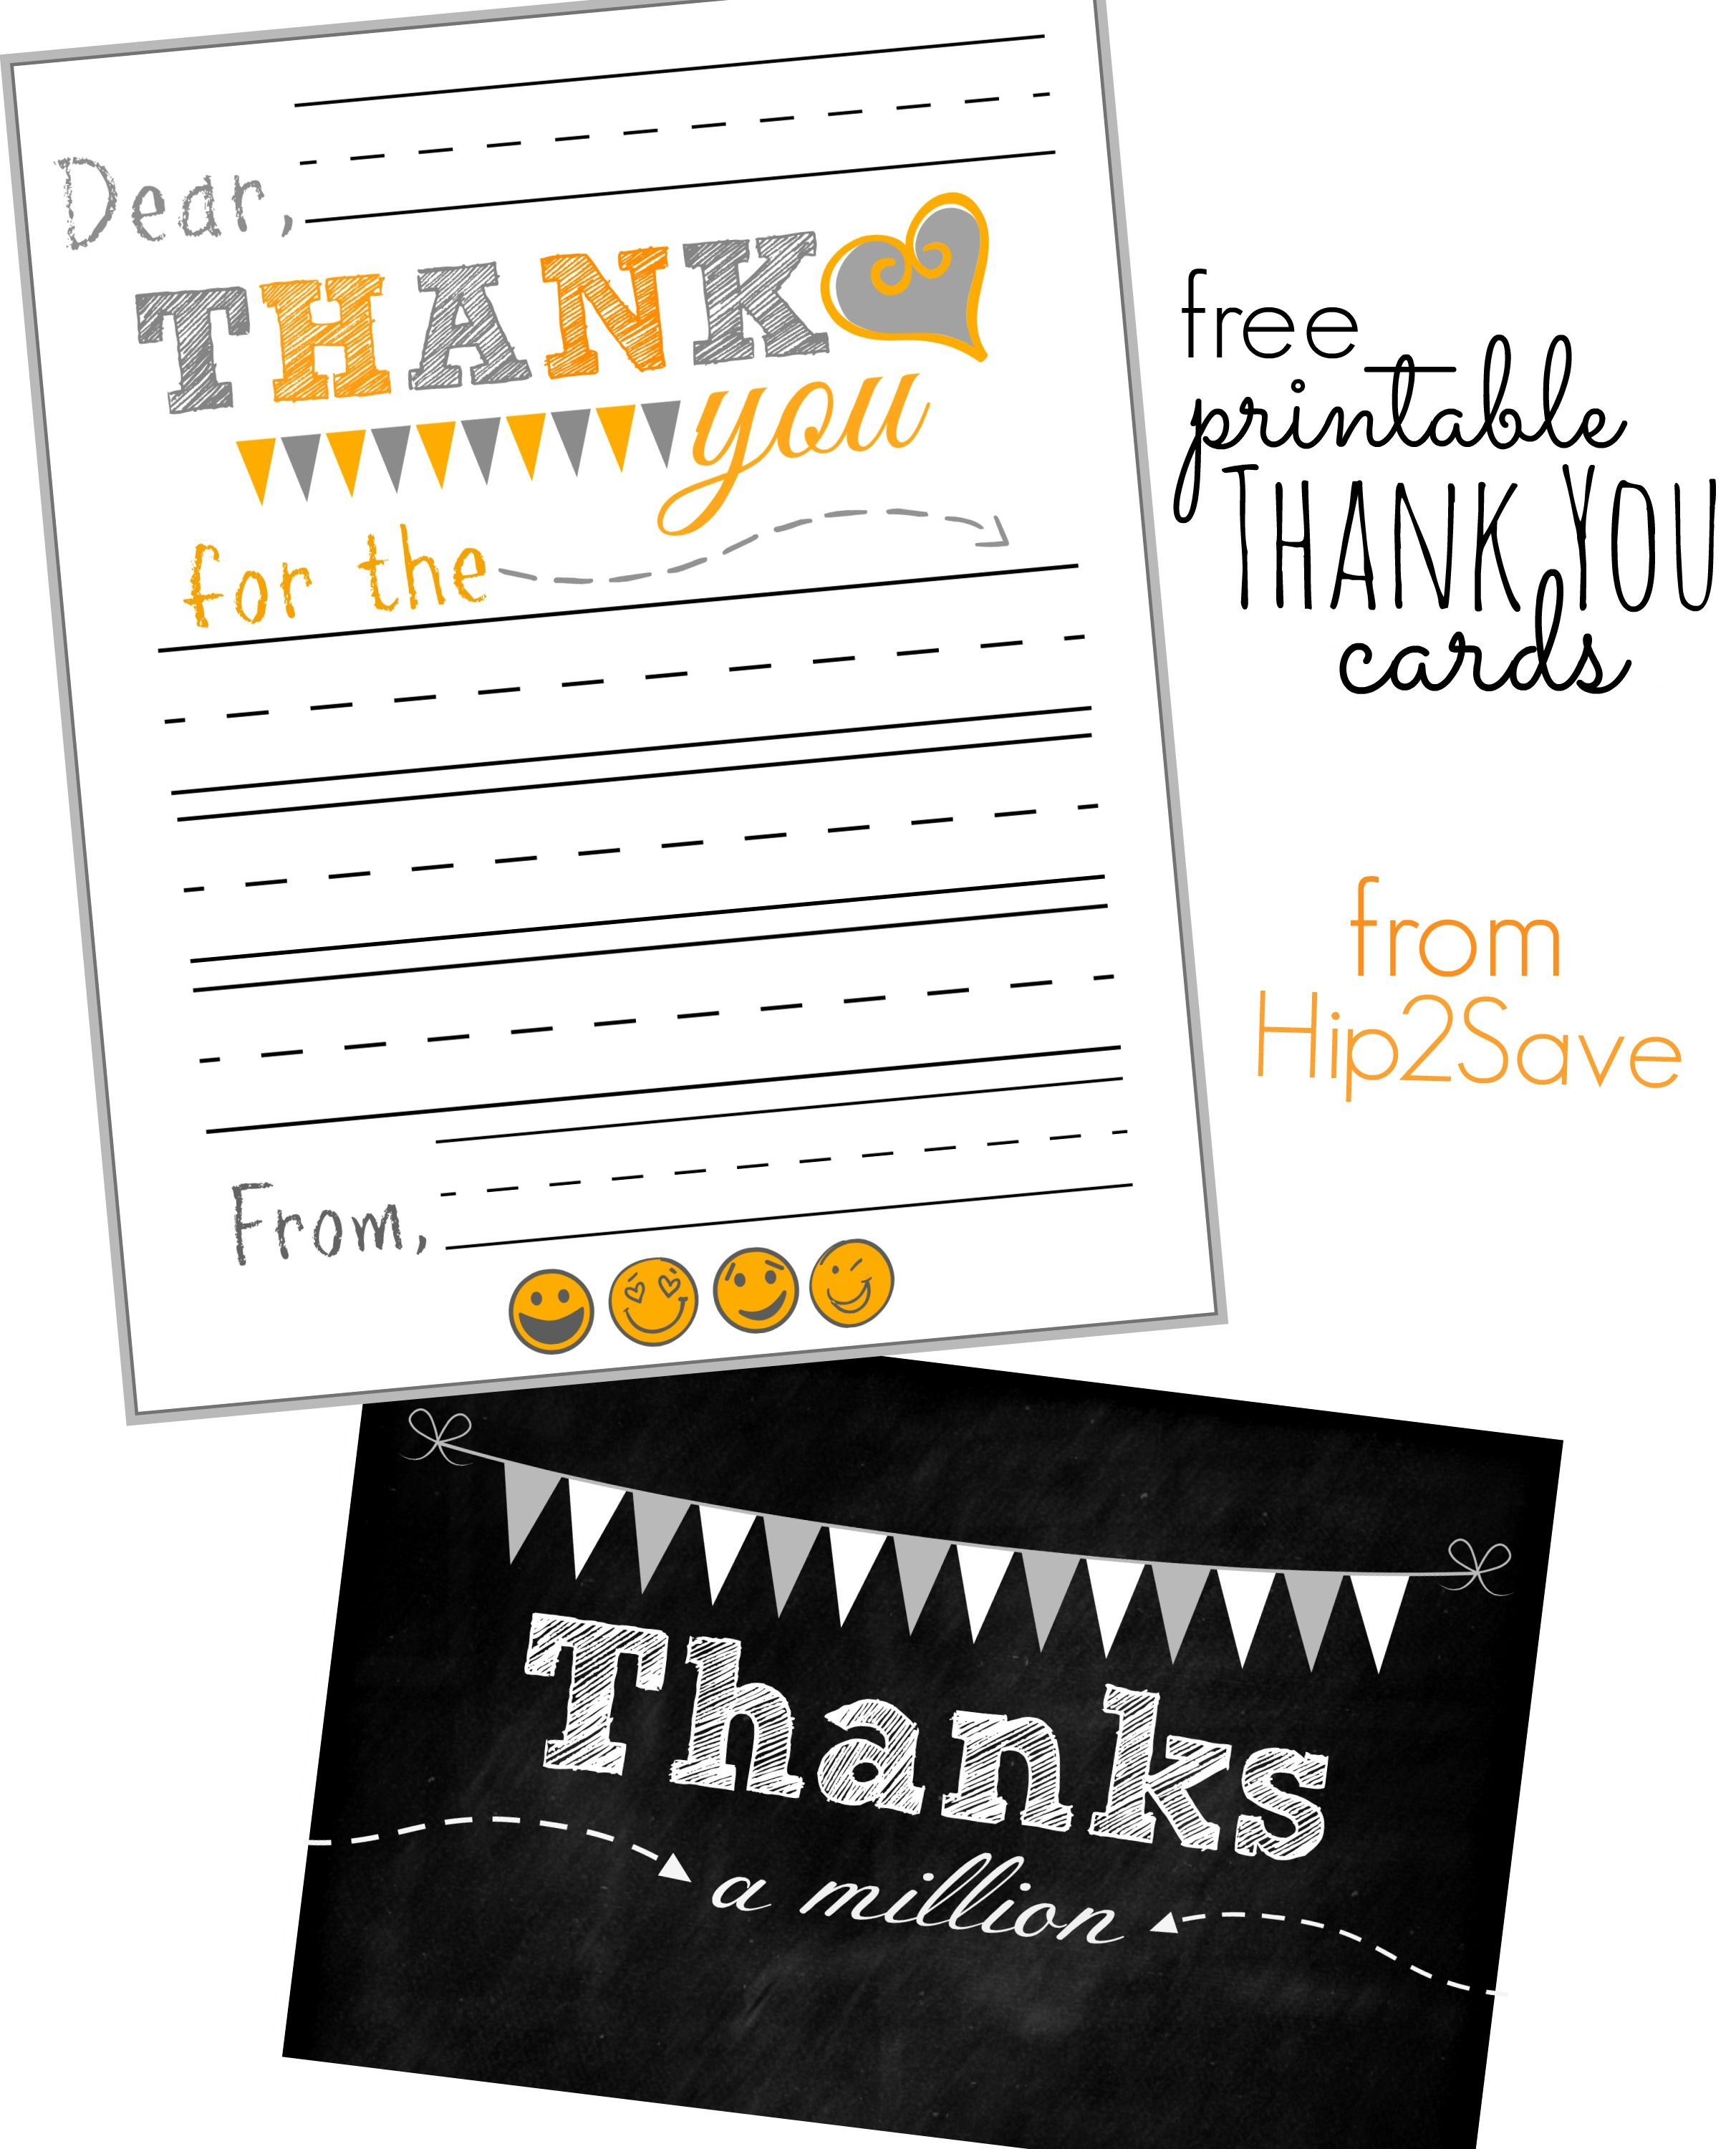 Free Printable Thank You Cards Free Printable Coupons And Free